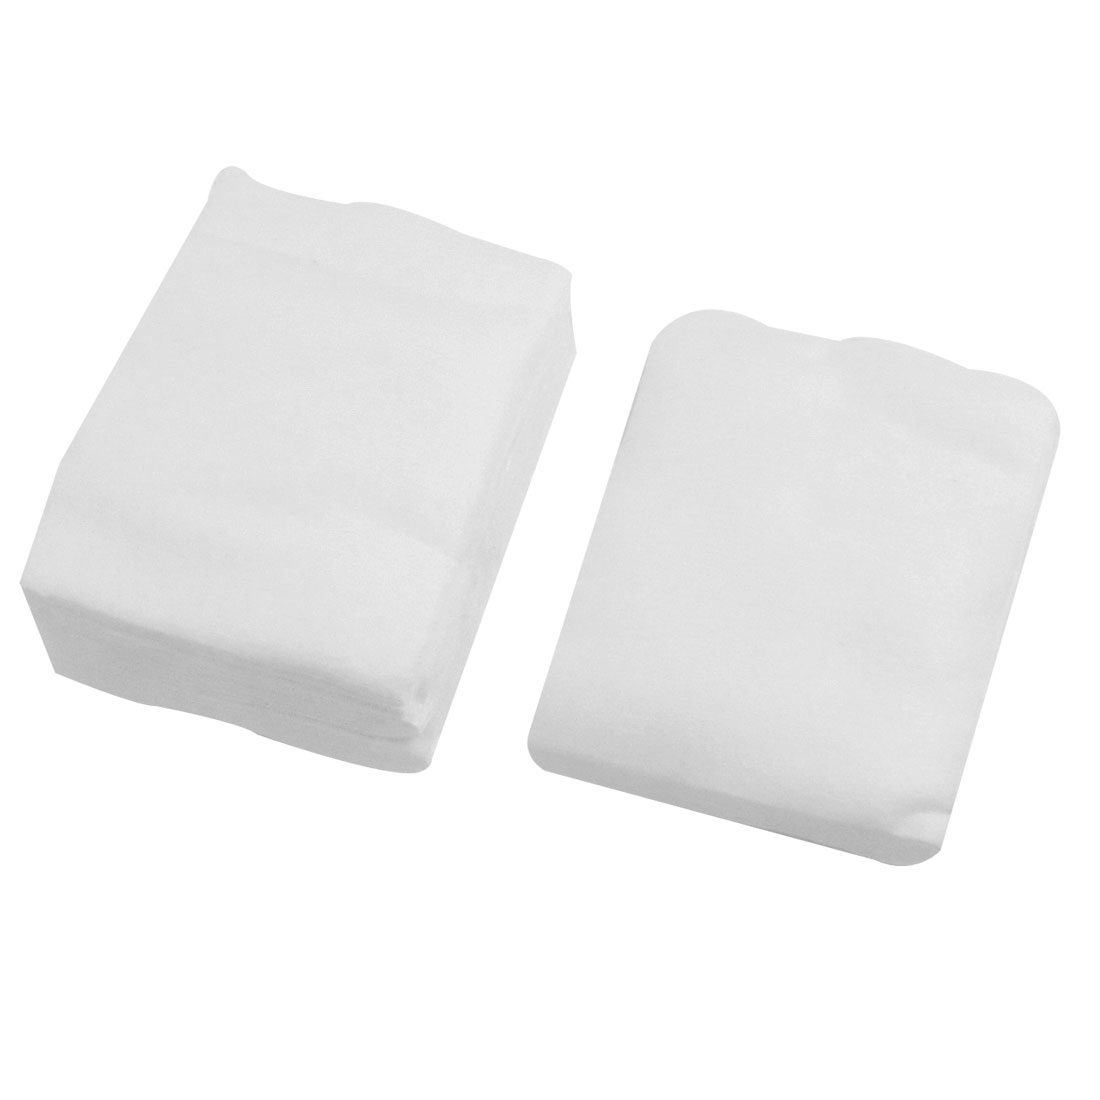 80 Pcs Soft Rectangle Facial Puffs Pads Cosmetic Tool for Woman